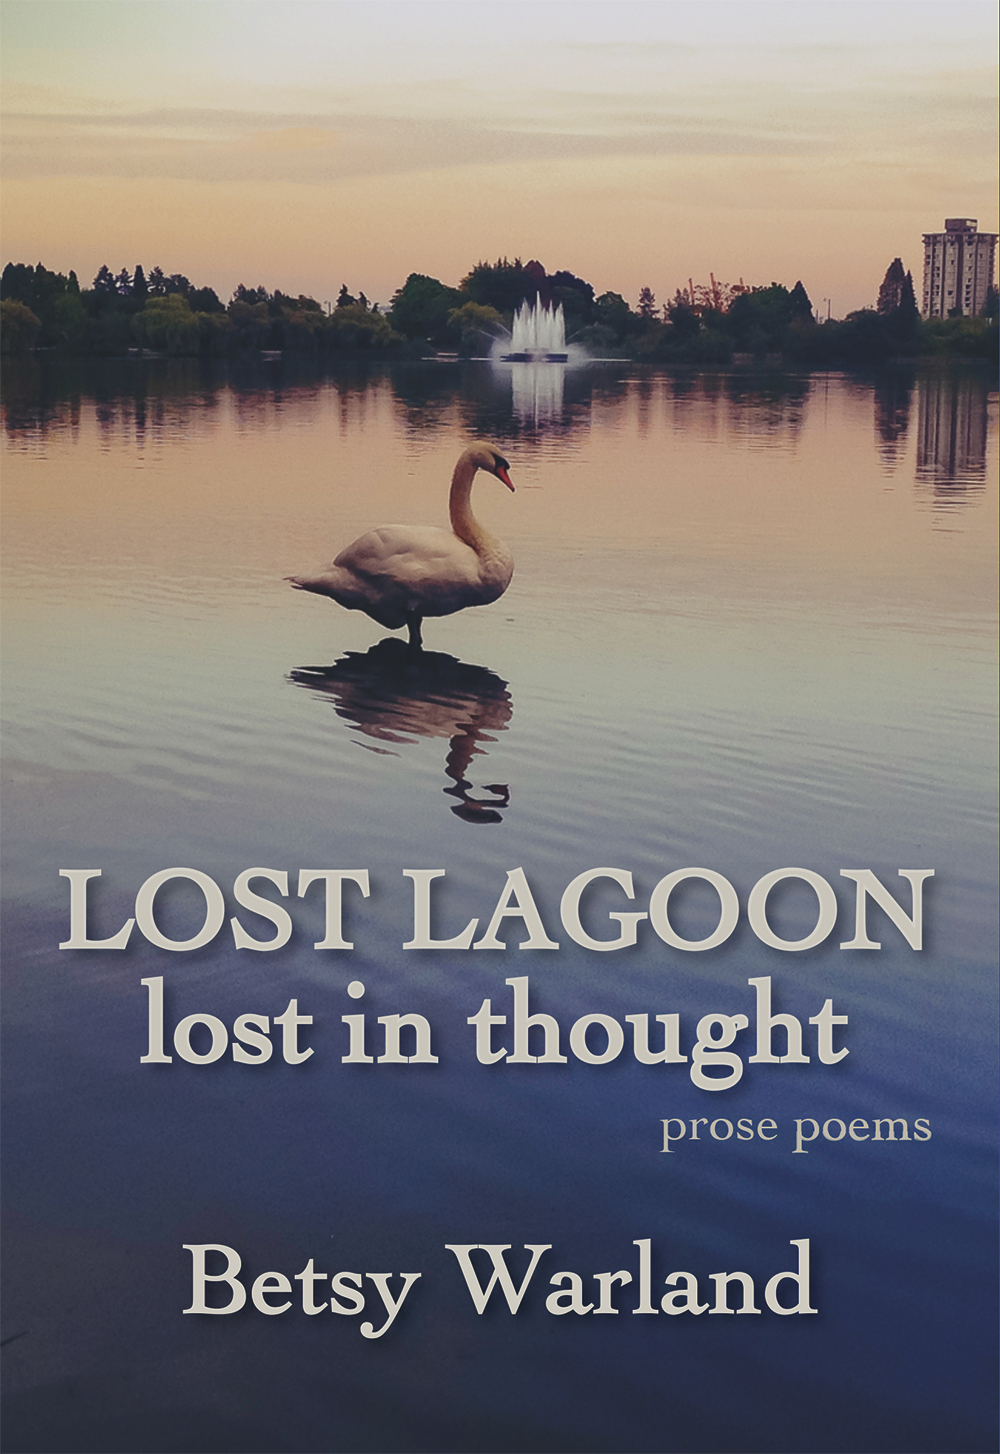 Lost Lagoon/lost in thought